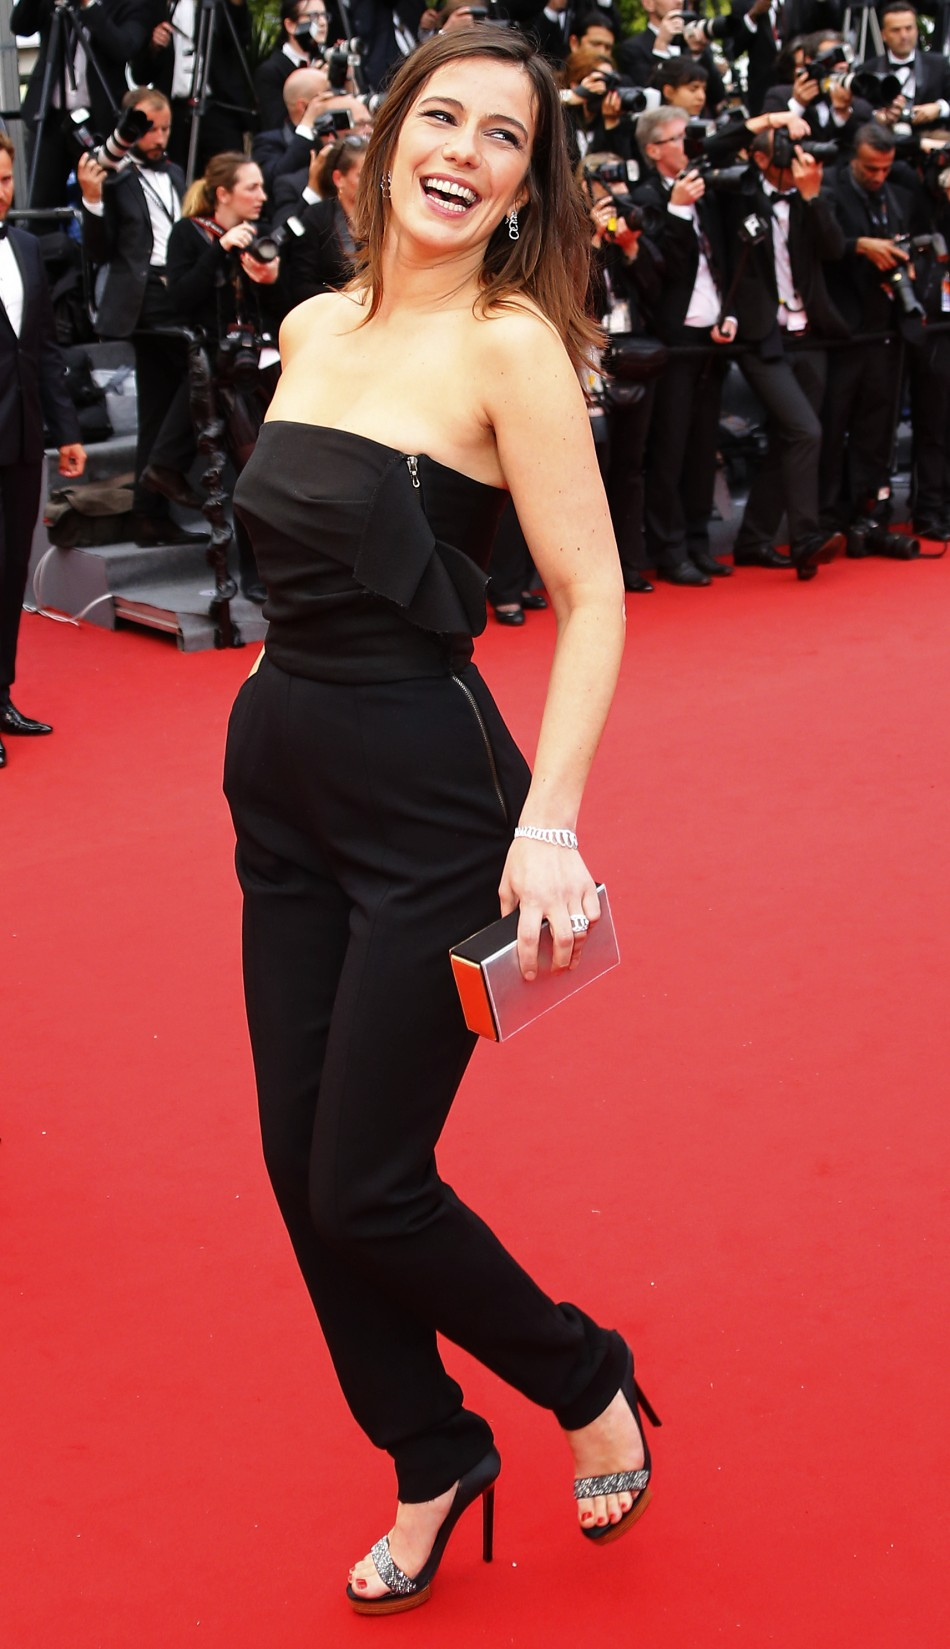 Actress Zoe Felix poses on the red carpet as she arrives for the screening of the film Jeune  Jolie Young  Beautiful in competition during the 66th Cannes Film Festival in Cannes May 16, 2013.